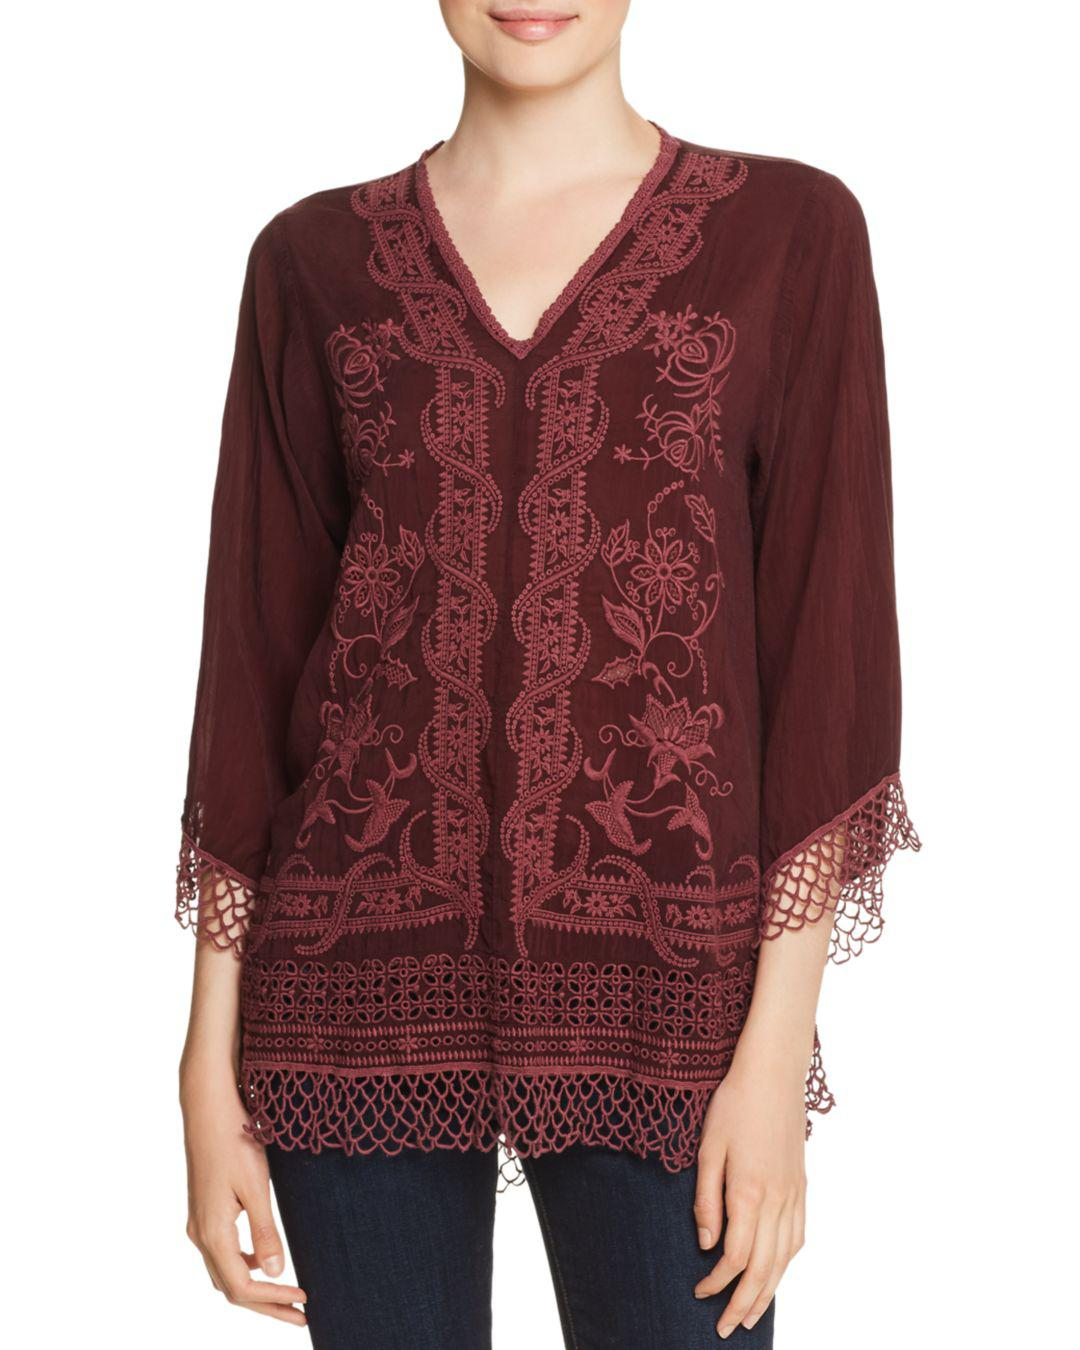 Ass Ic assic embroidered 3/4 sleeve top